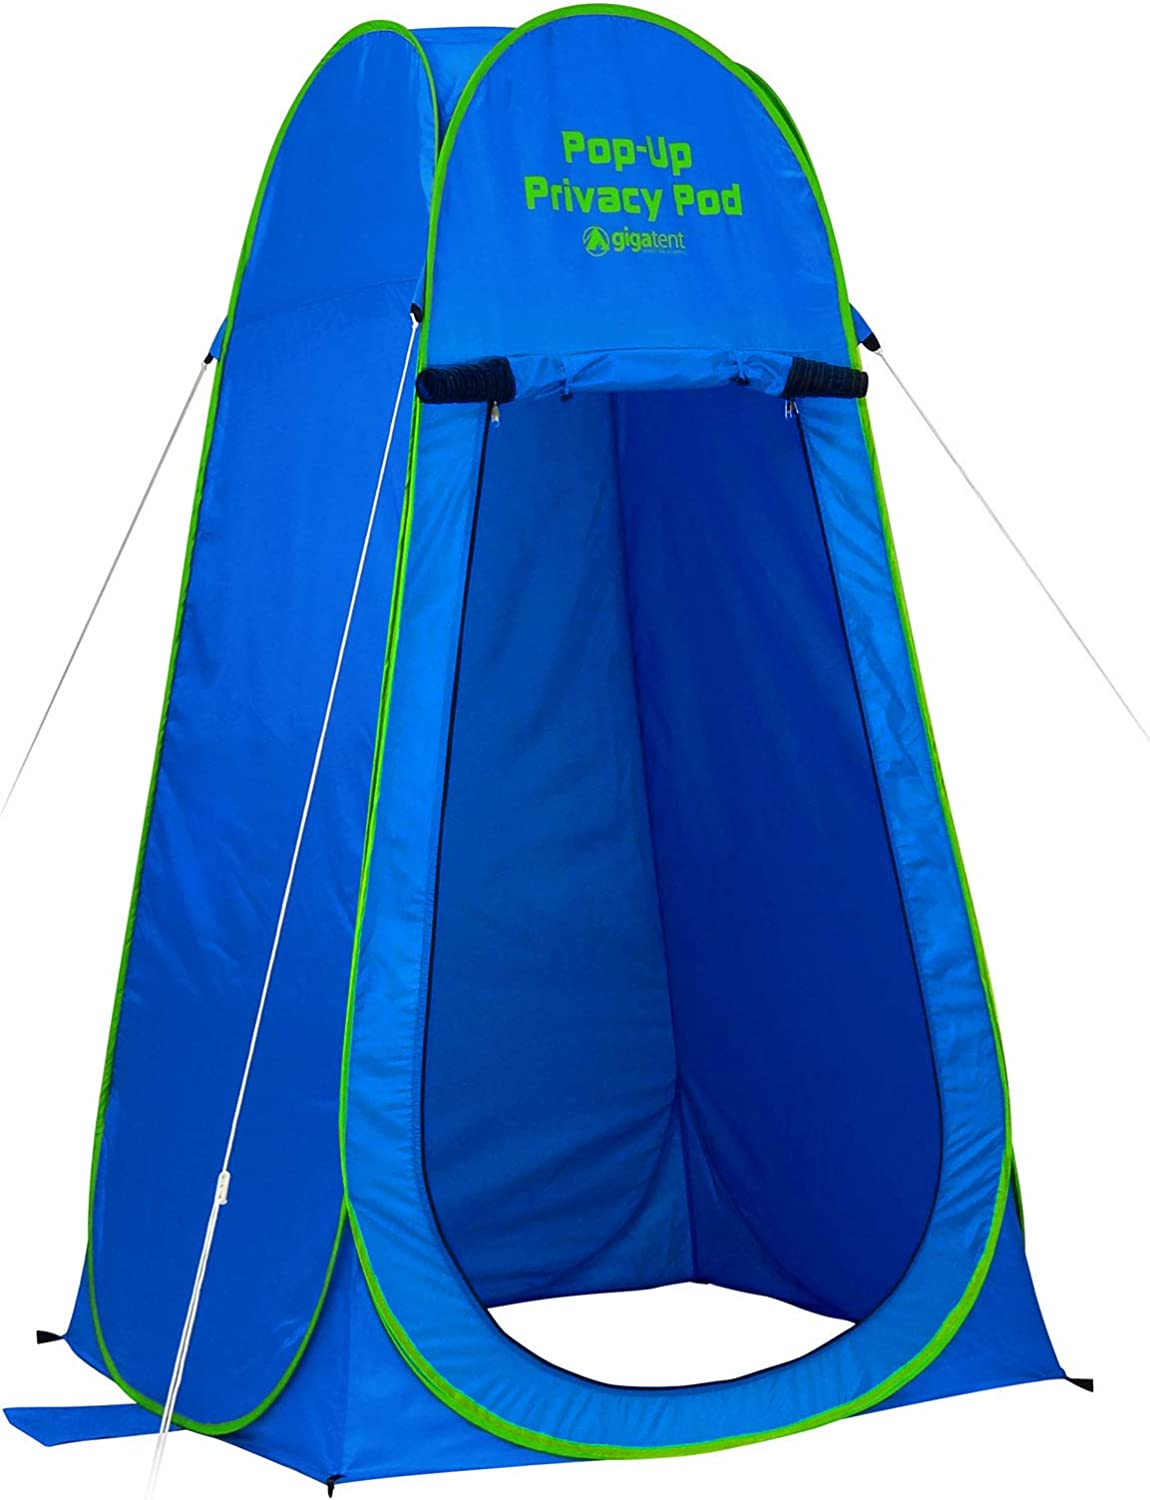 Details about  /Foldable Pop Up Pod Changing Room Privacy Tent Instant Portable Shower Tent New